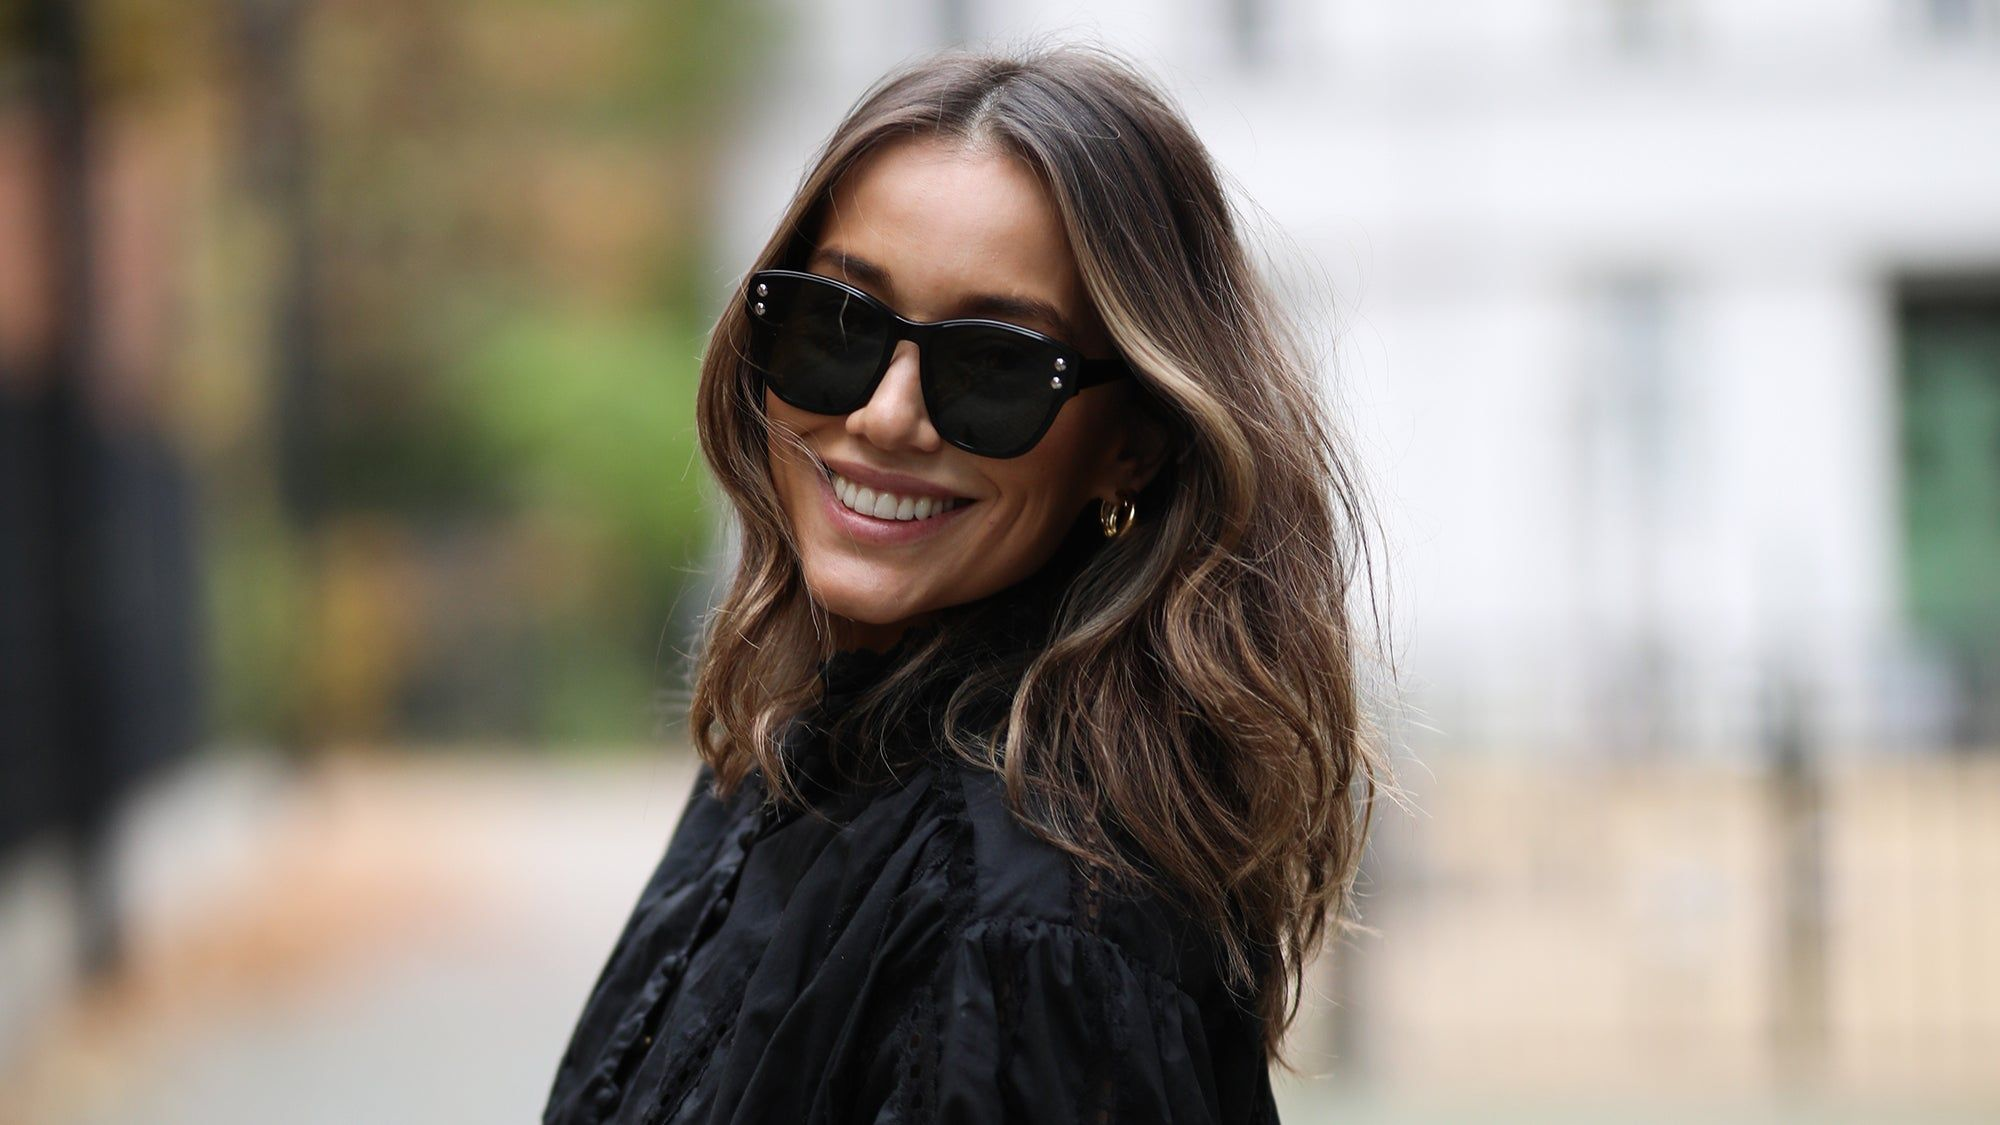 Chocolate Chai Is The Balayage Trend To Try This Fall In 2020 Balayage Brunette Brown Hair Balayage Hair Color Balayage